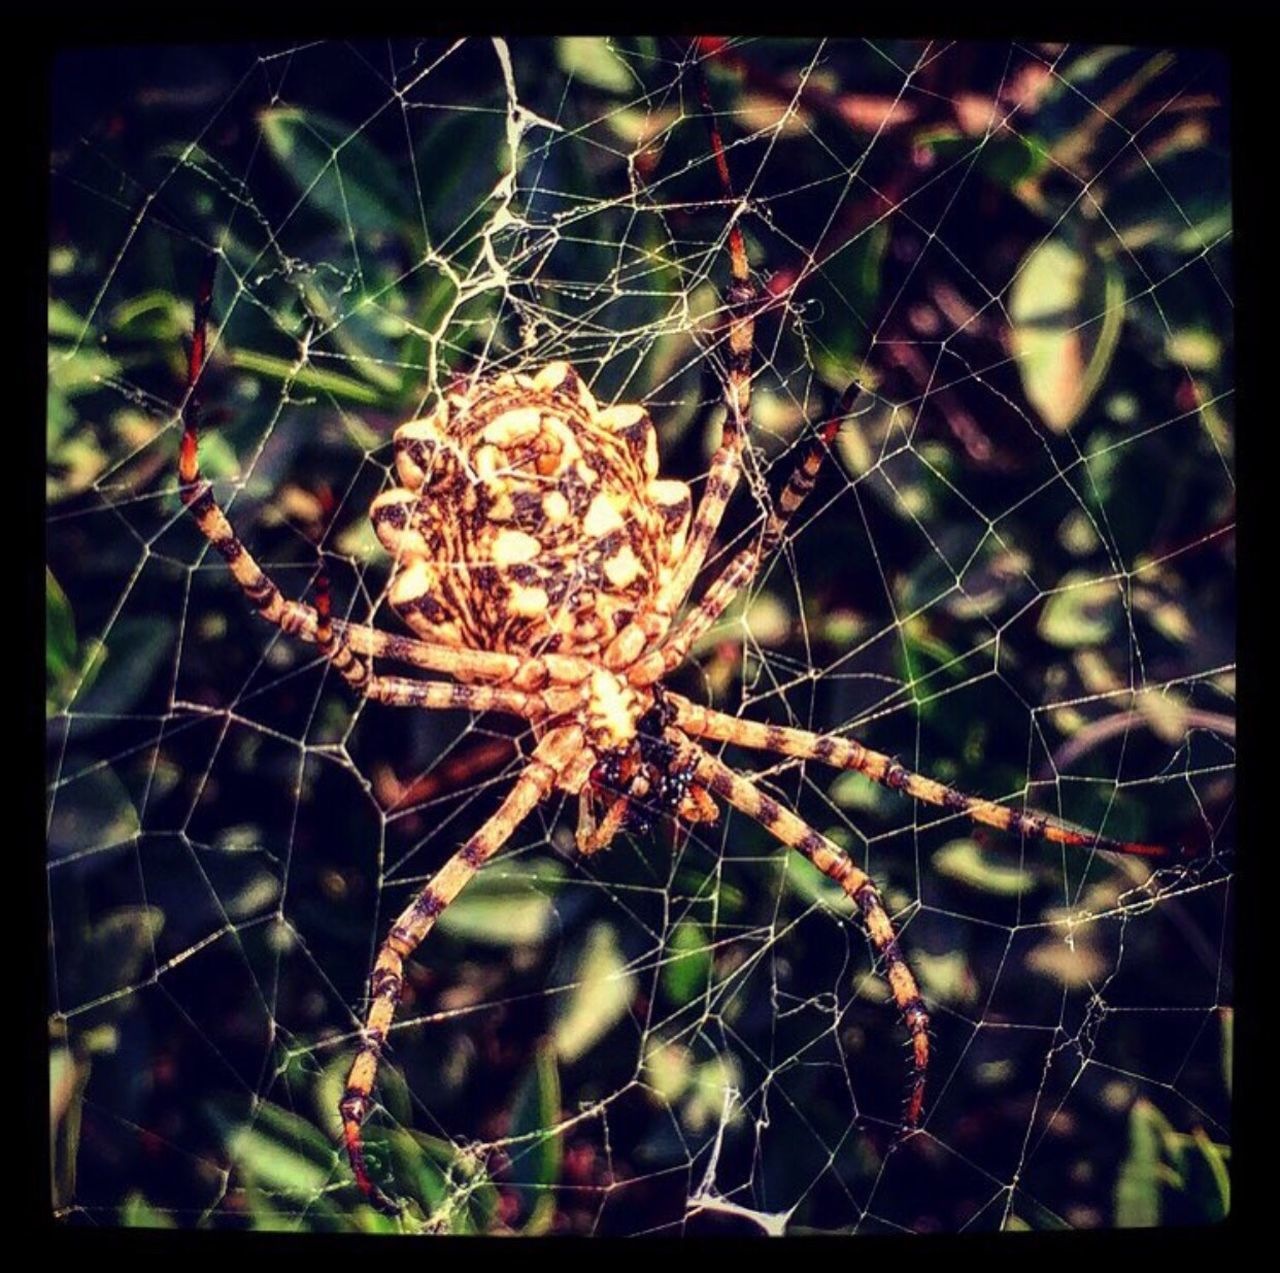 Hungry spider Spider Web Spider Web Animals In The Wild Beauty In Nature